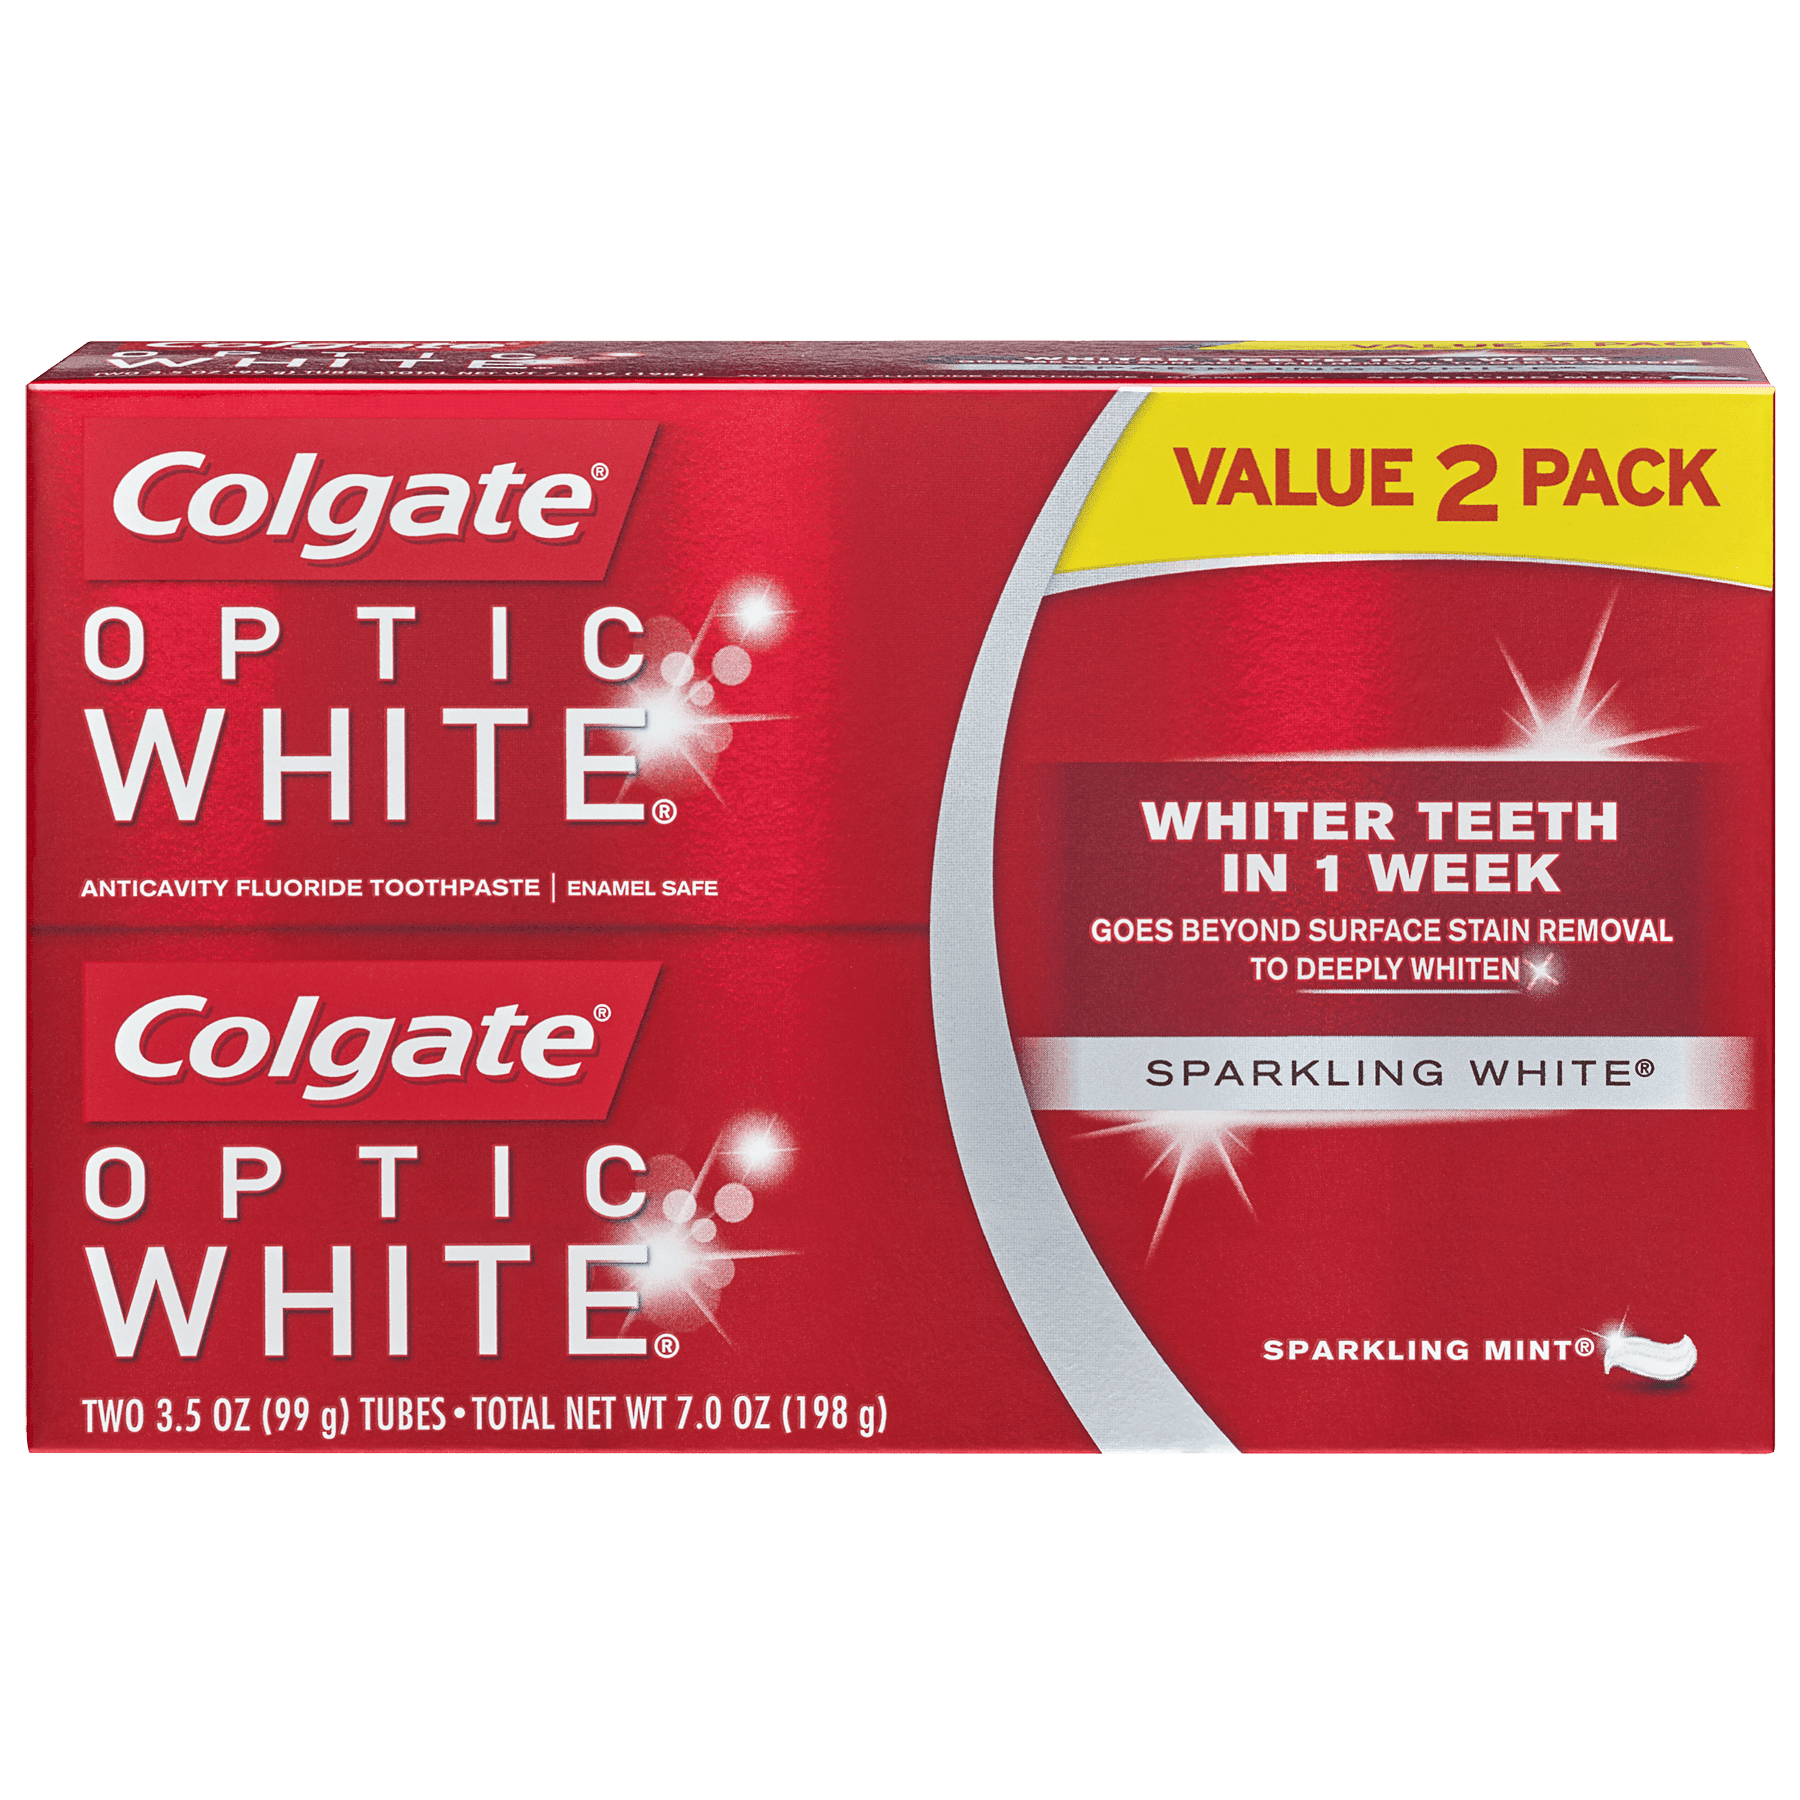 Colgate Optic White Whitening Toothpaste, Sparkling White - 3.5 ounce (2 pack)